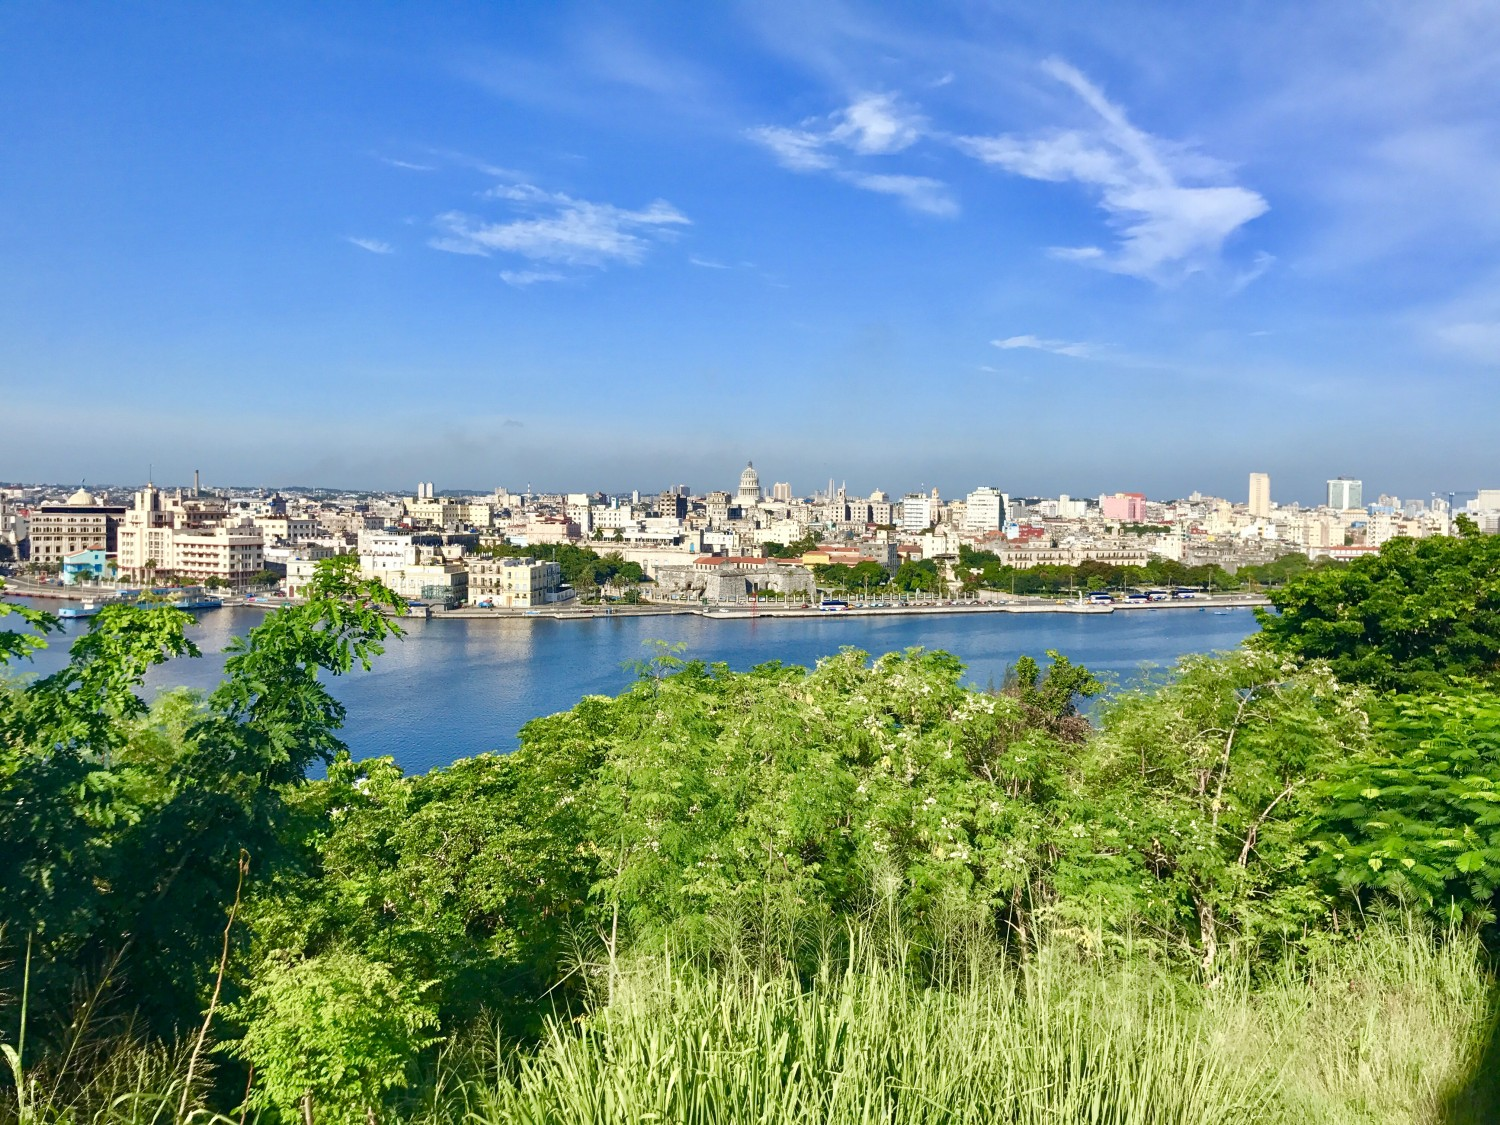 Here's where you need to go for the best views in Havana